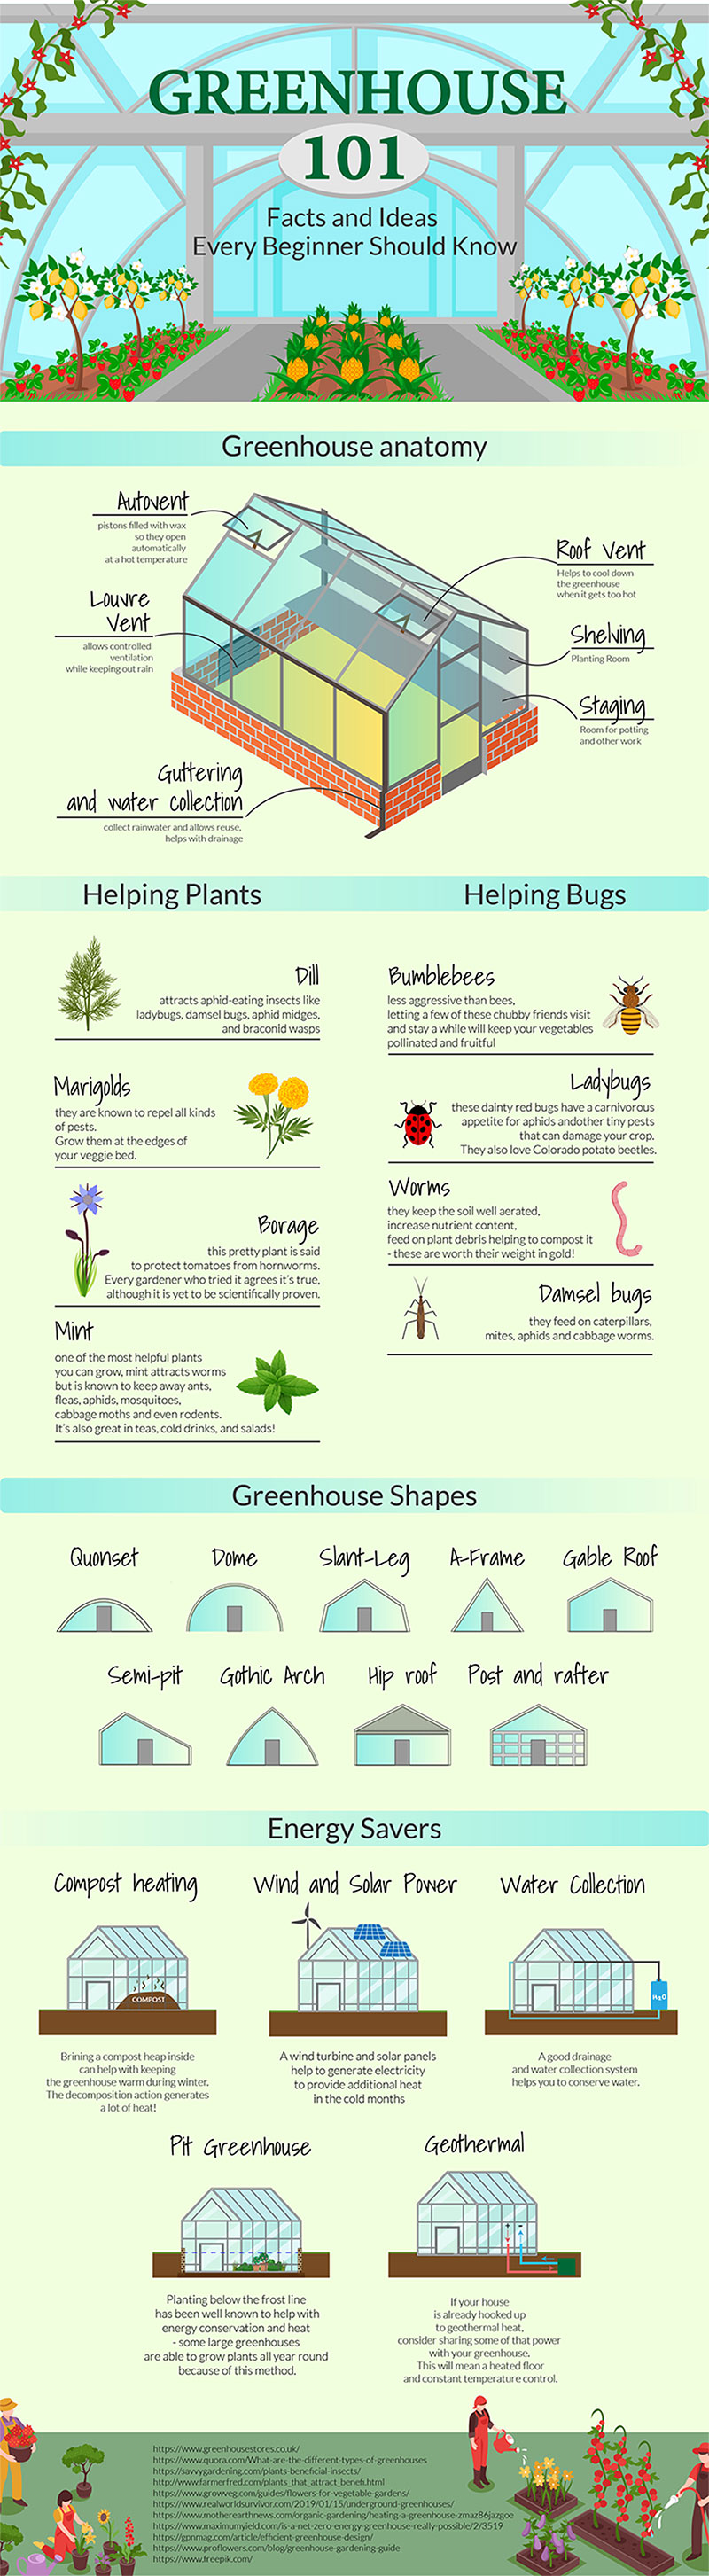 Creating Edible Landscaping - Infographic